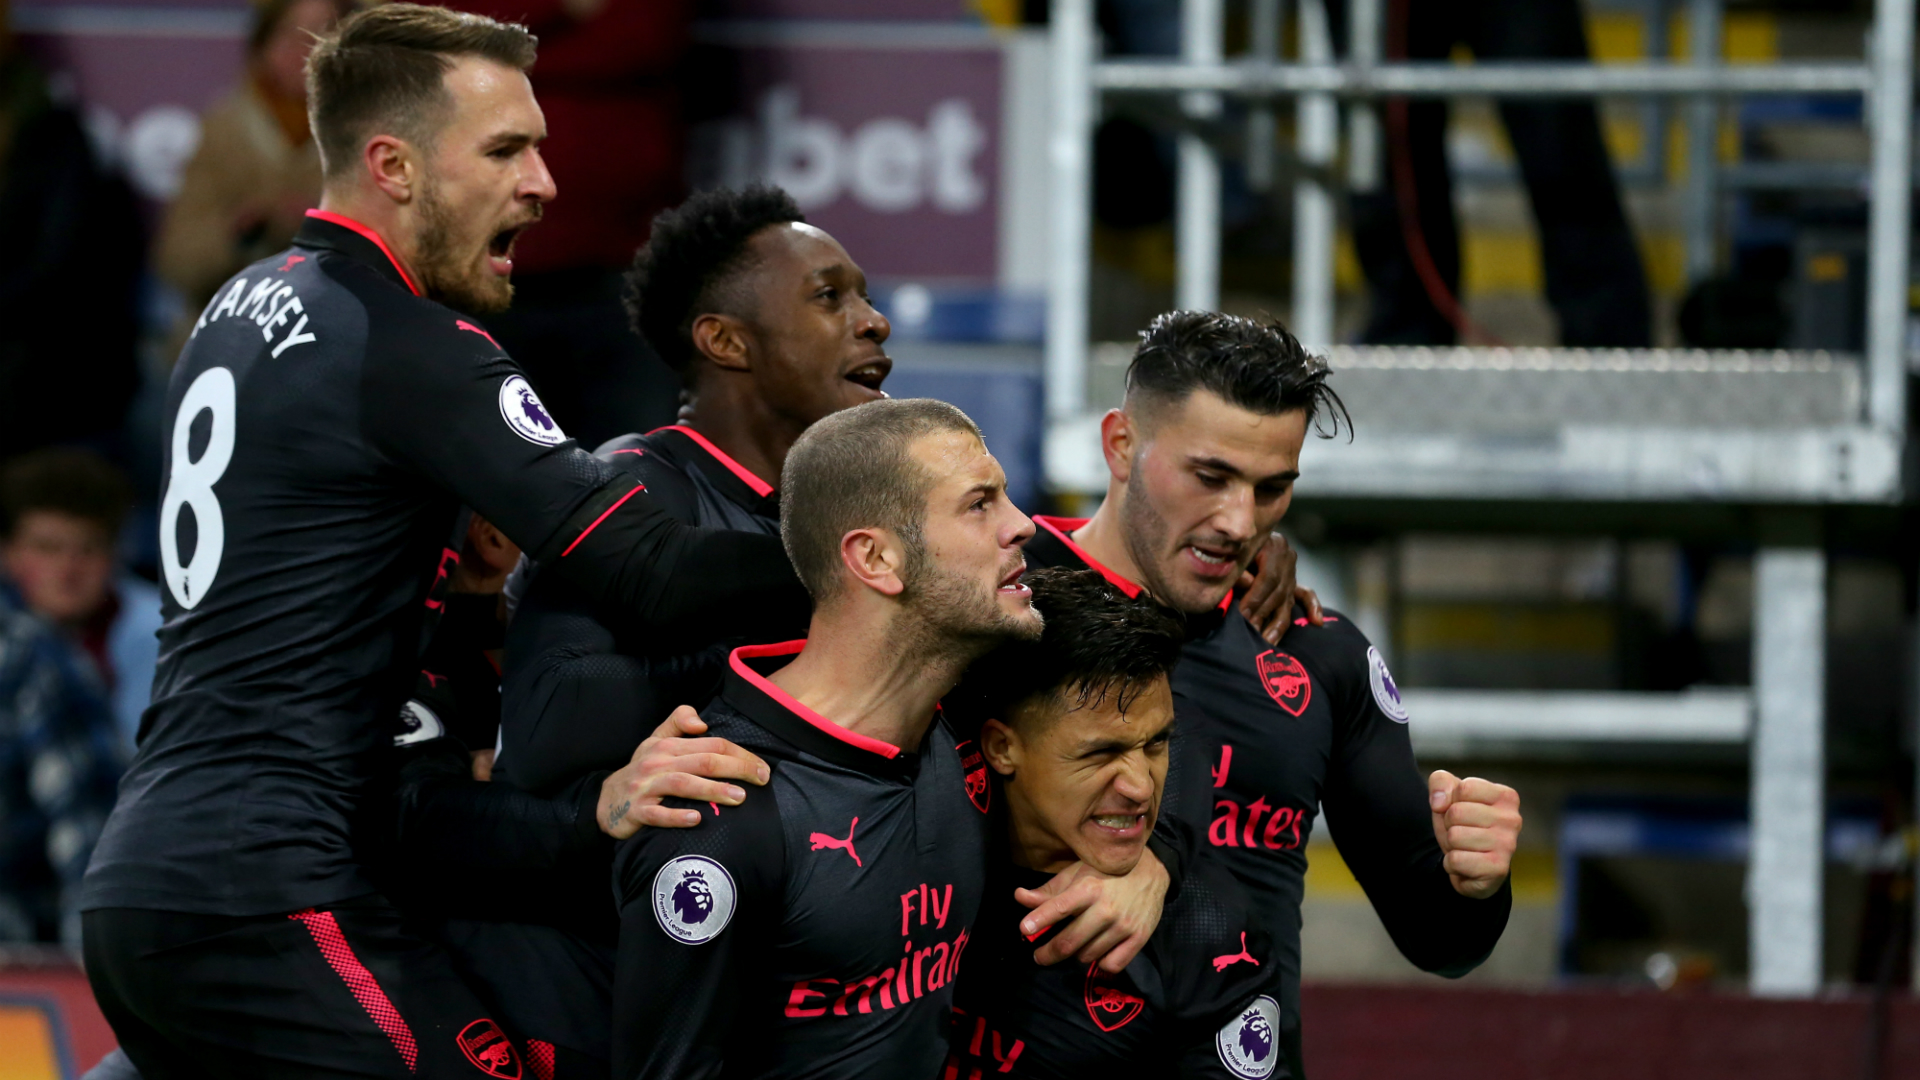 'The hand of Kos!' - Arsenal troll Burnley with throwback goals compilation